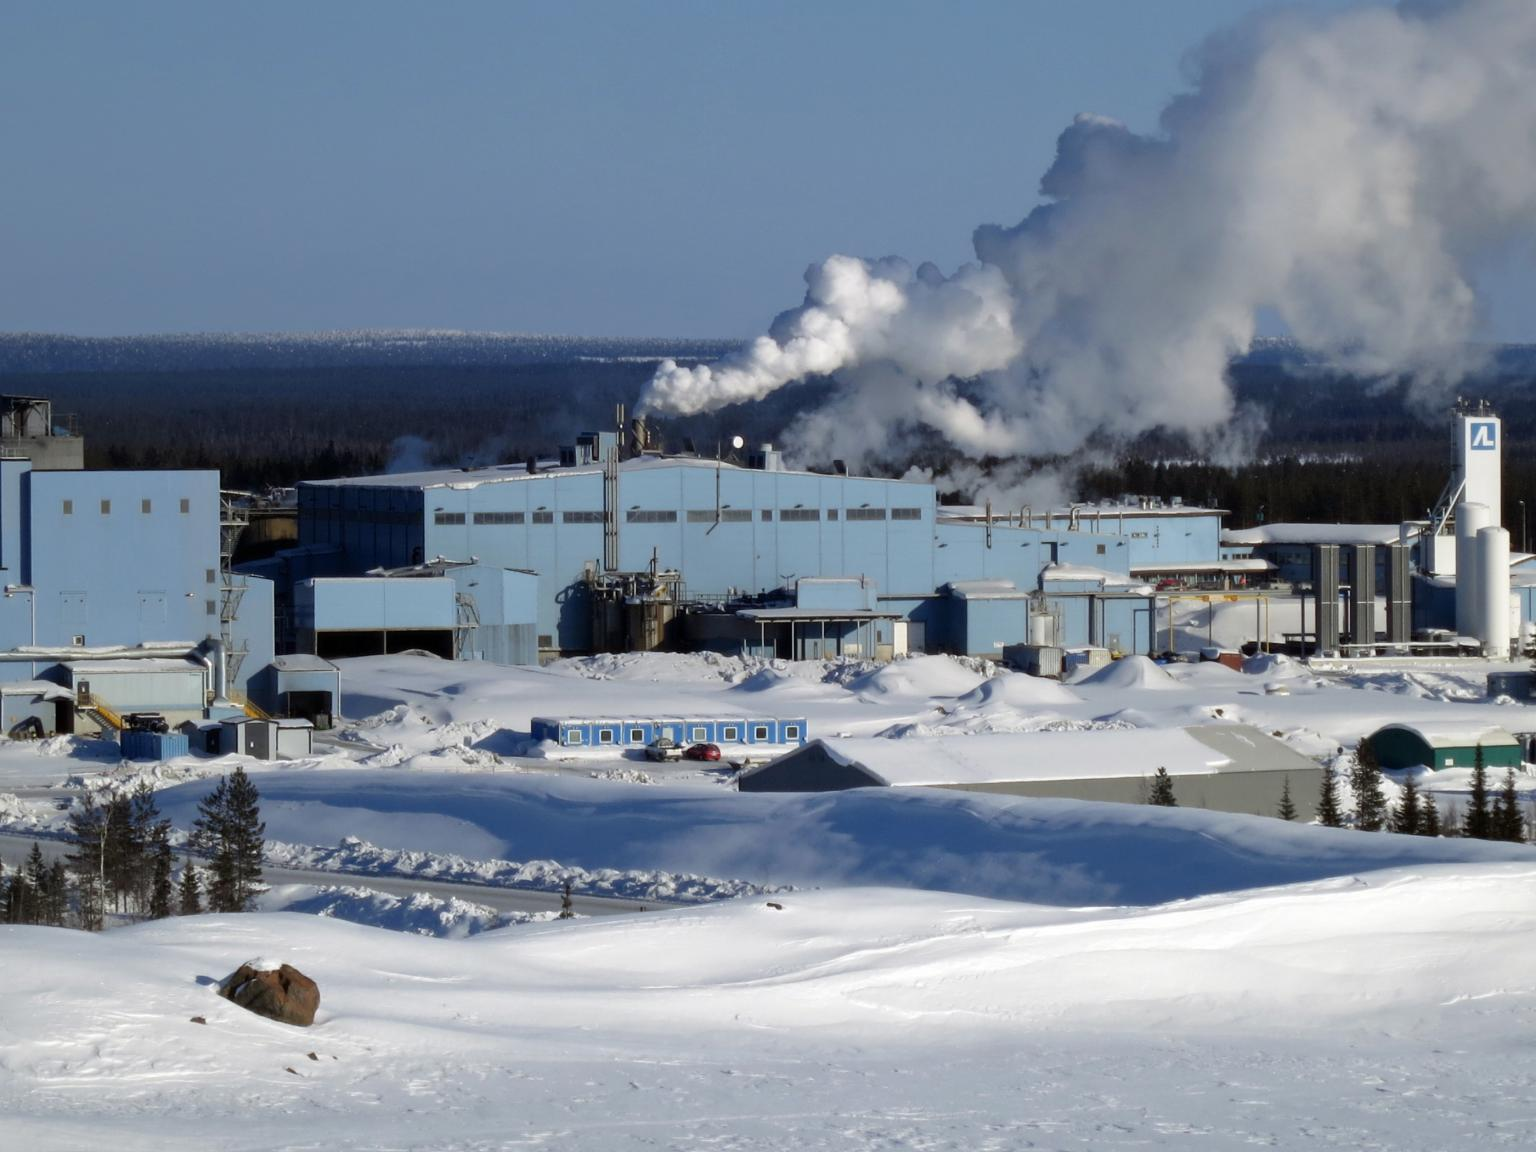 Agnico Eagle's gold mine in Finland is 150km inside the Arctic circle near the town of Kittila